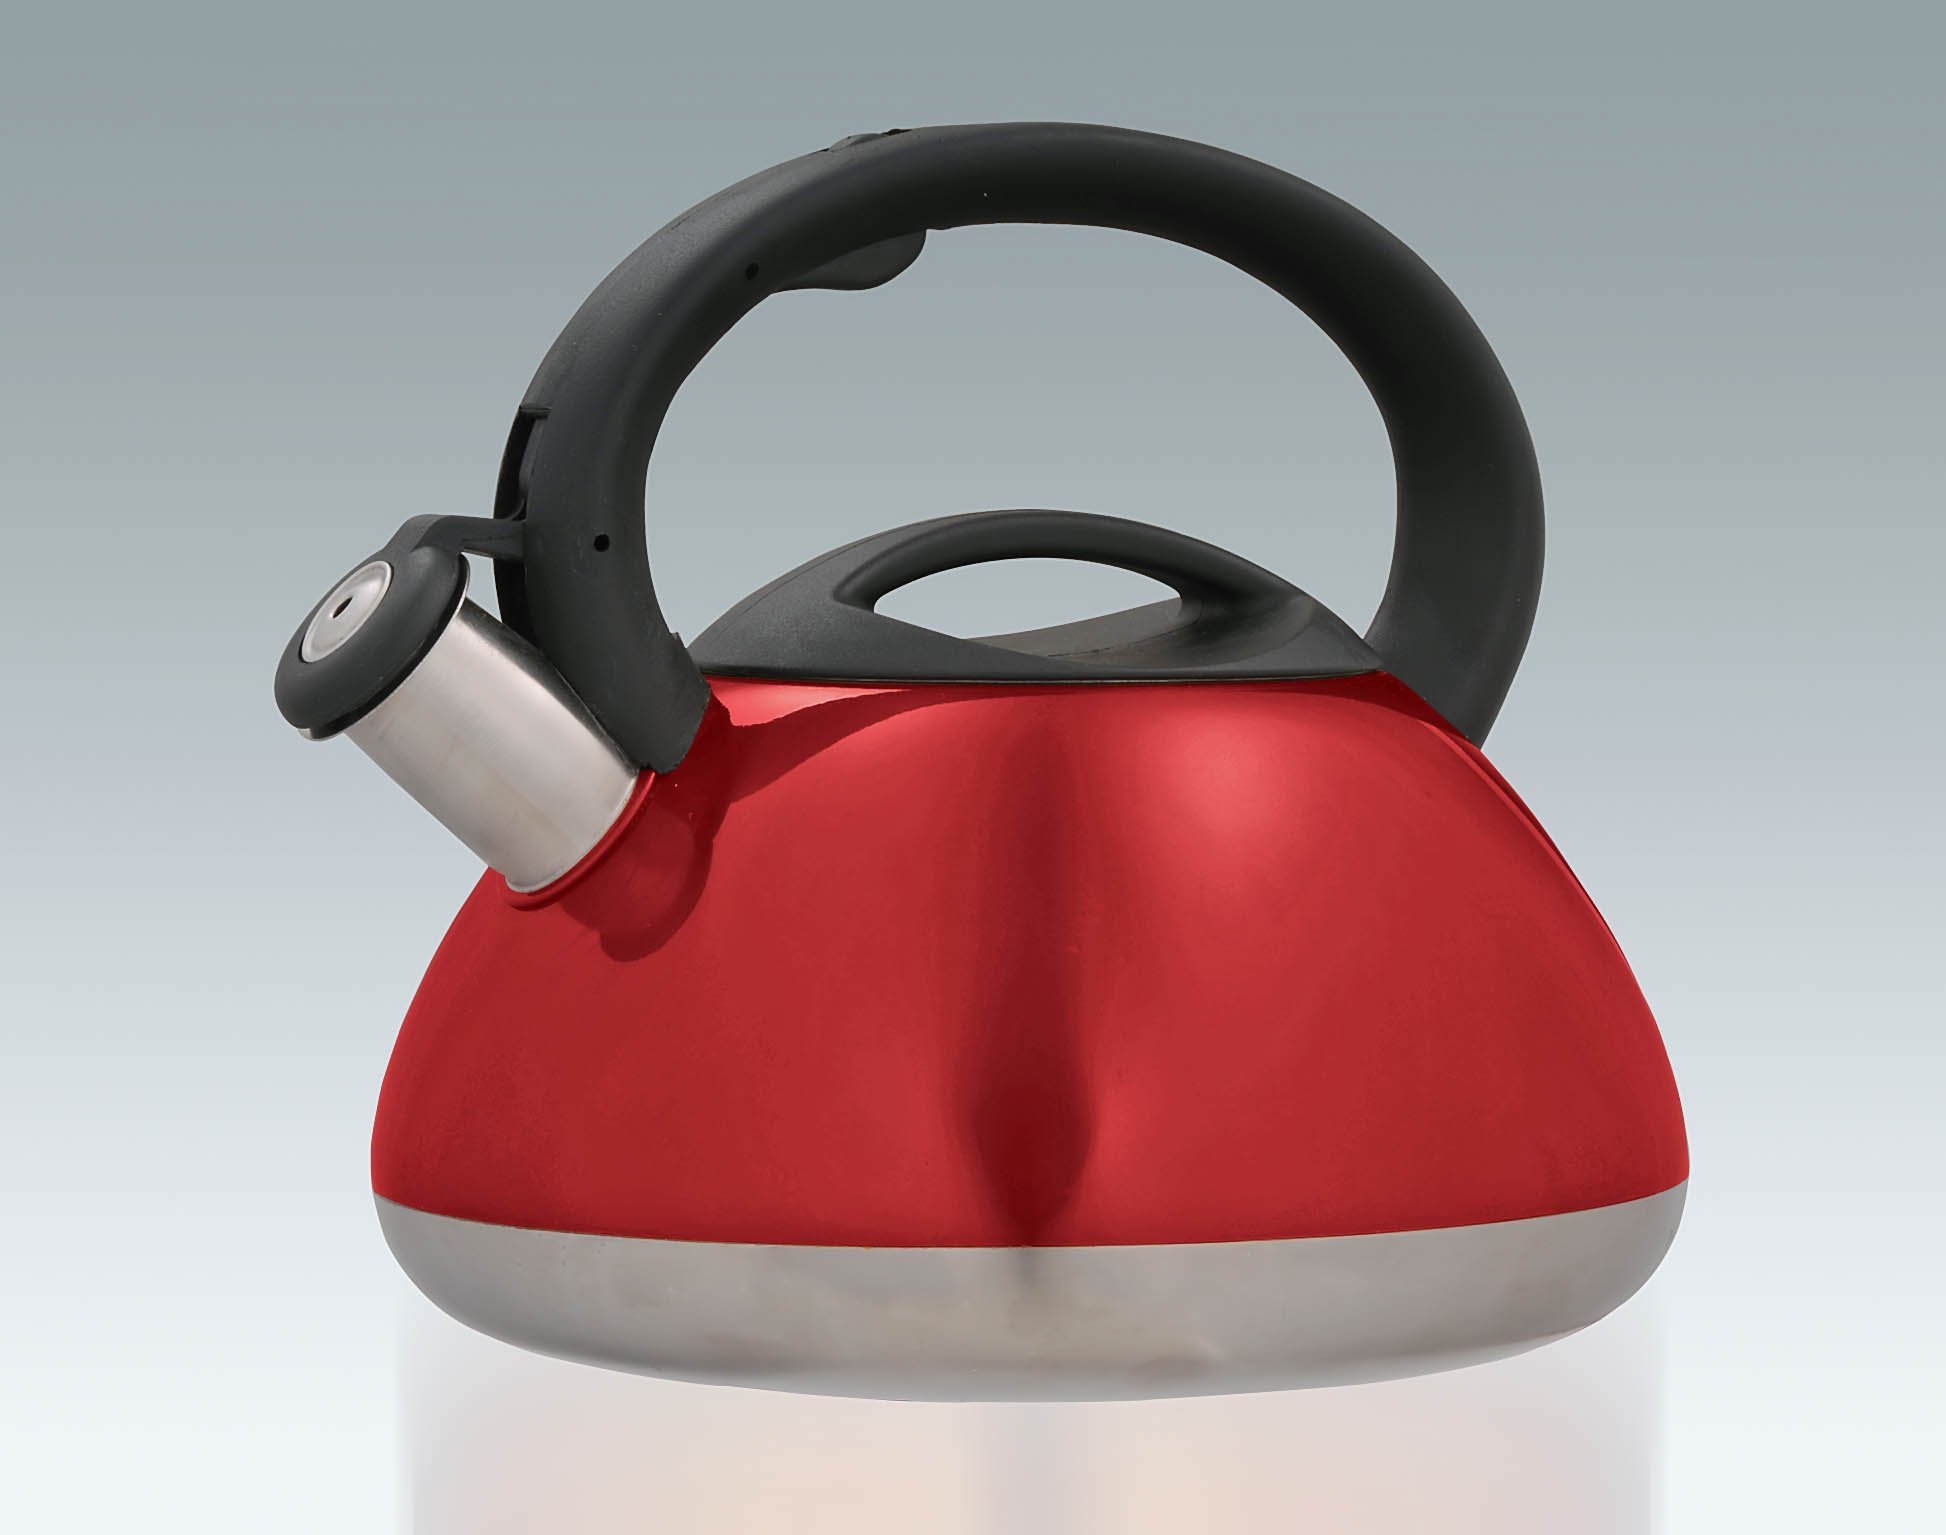 Creative Home Sphere 3-Quart Cranberry Stainless Steel Tea Kettle